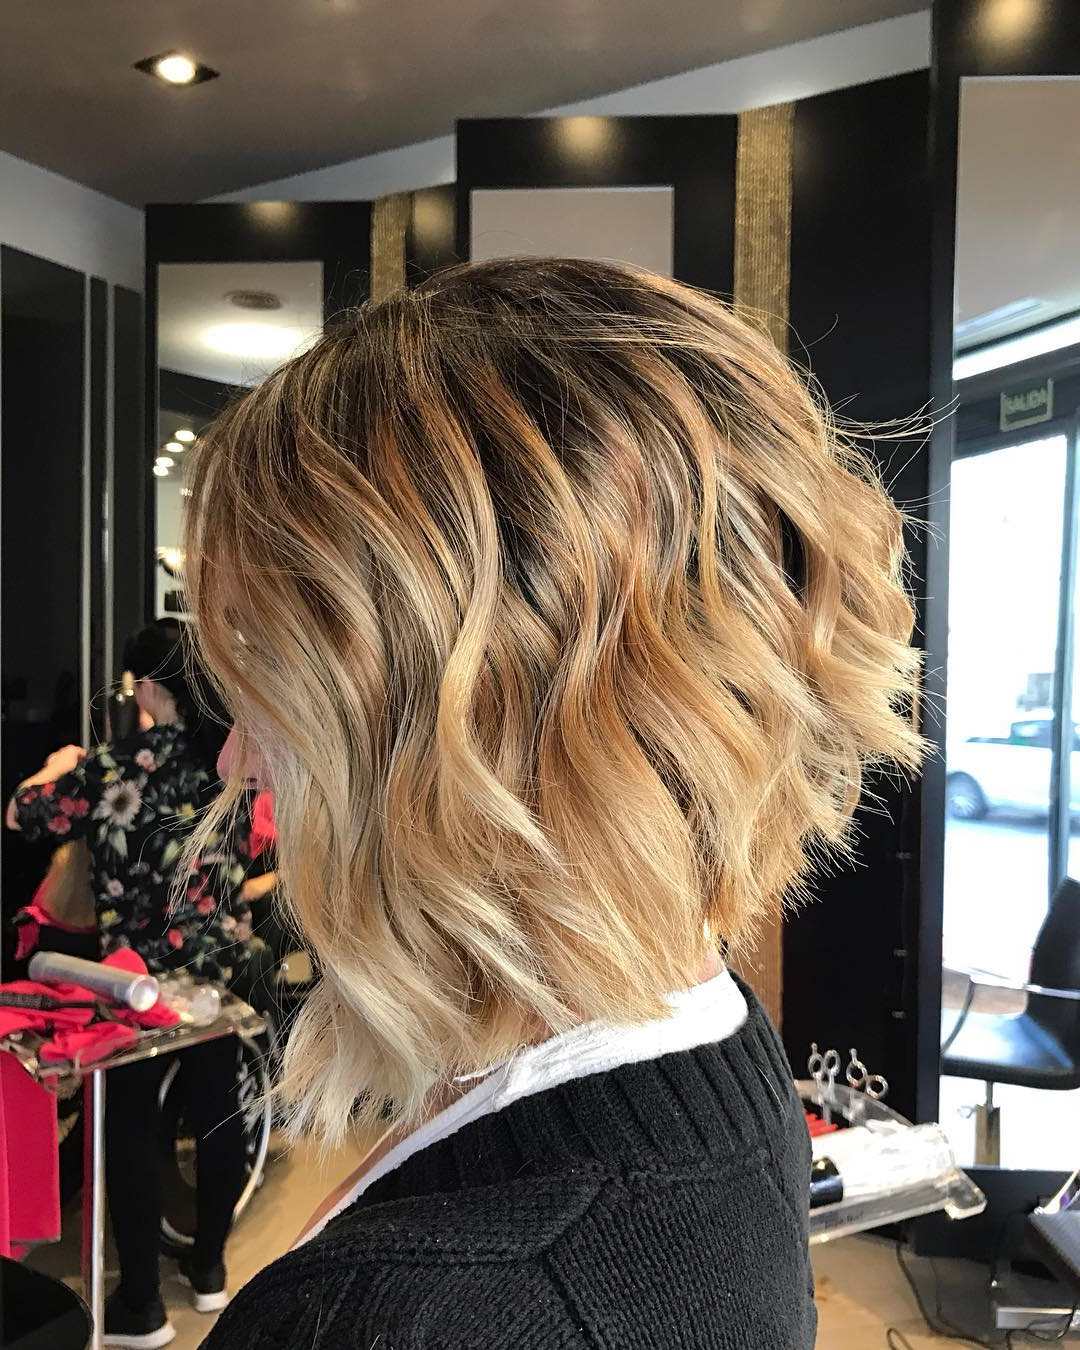 10 Layered Bob Hairstyles – Look Fab In New Blonde Shades! – Popular With Regard To White Blonde Curly Layered Bob Hairstyles (View 11 of 25)